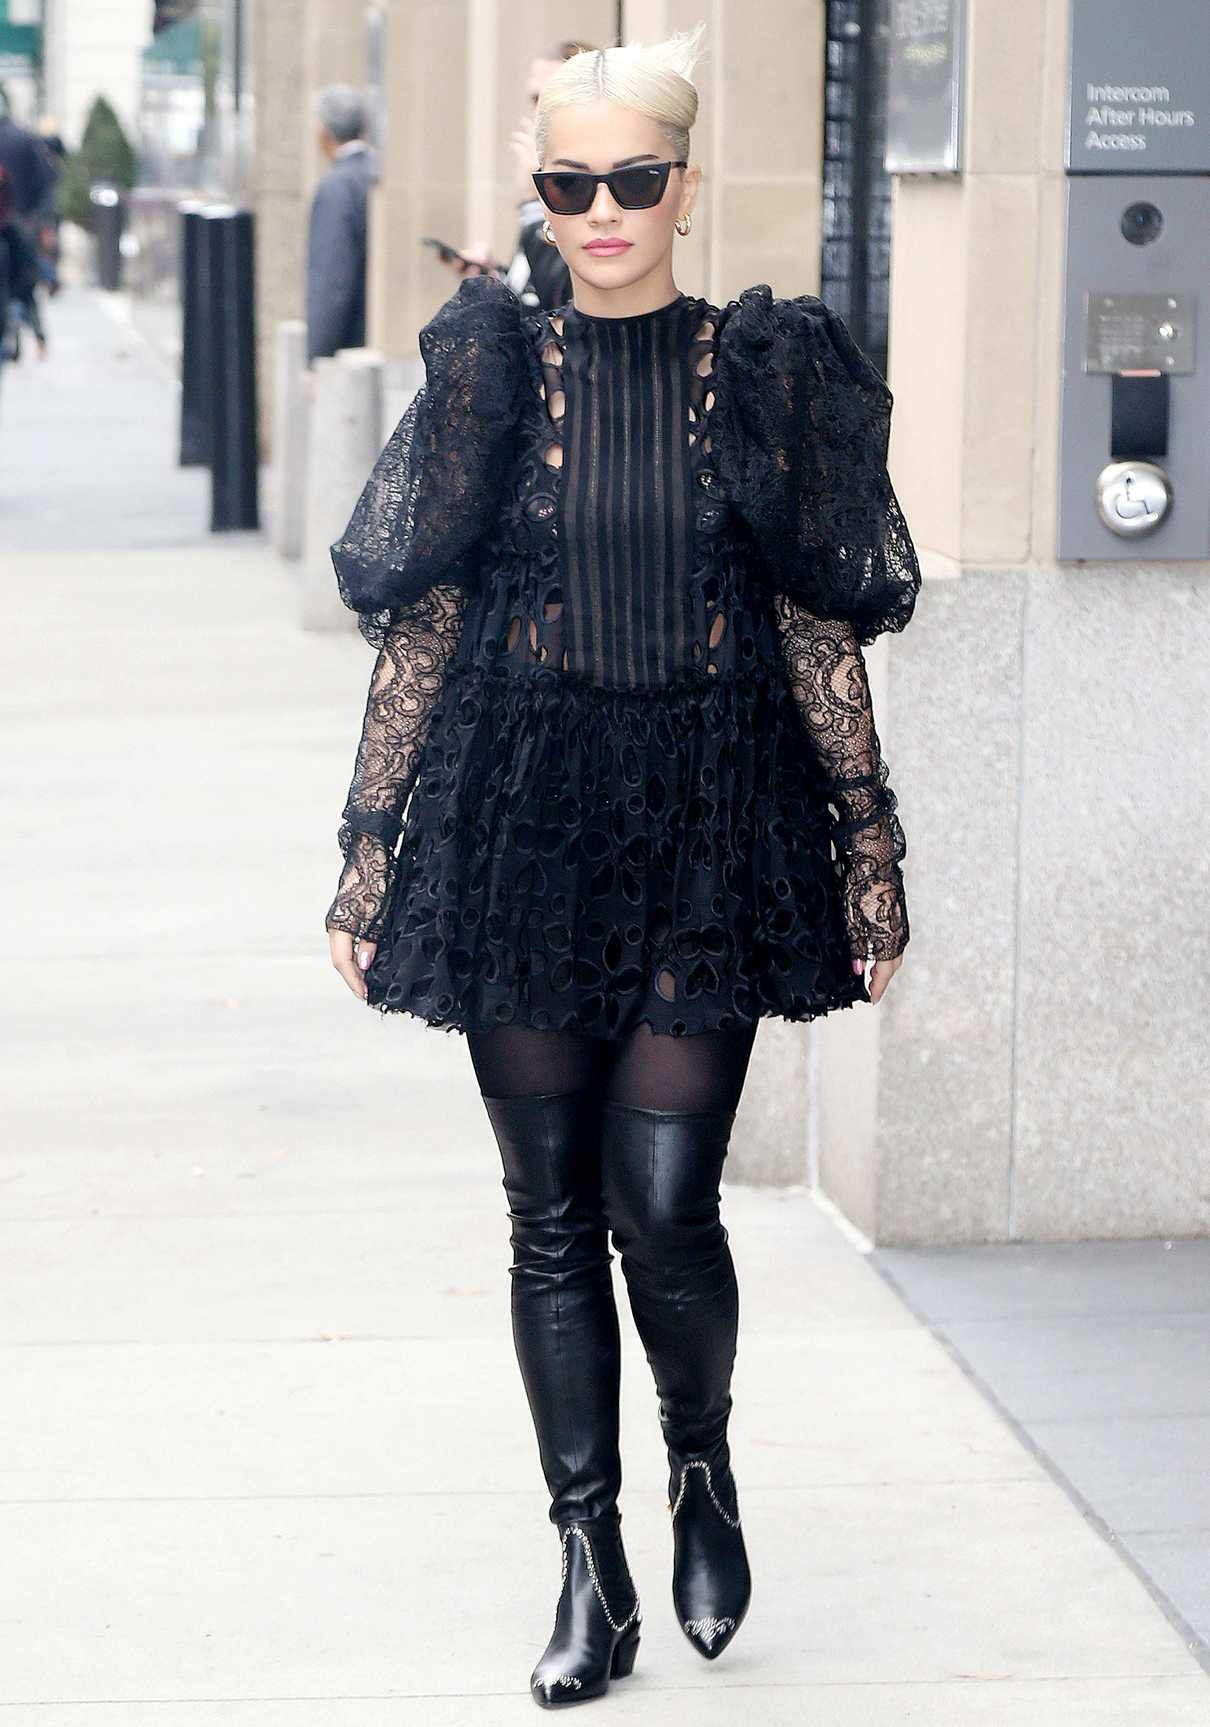 Rita Ora in a Black Embroidered Dress